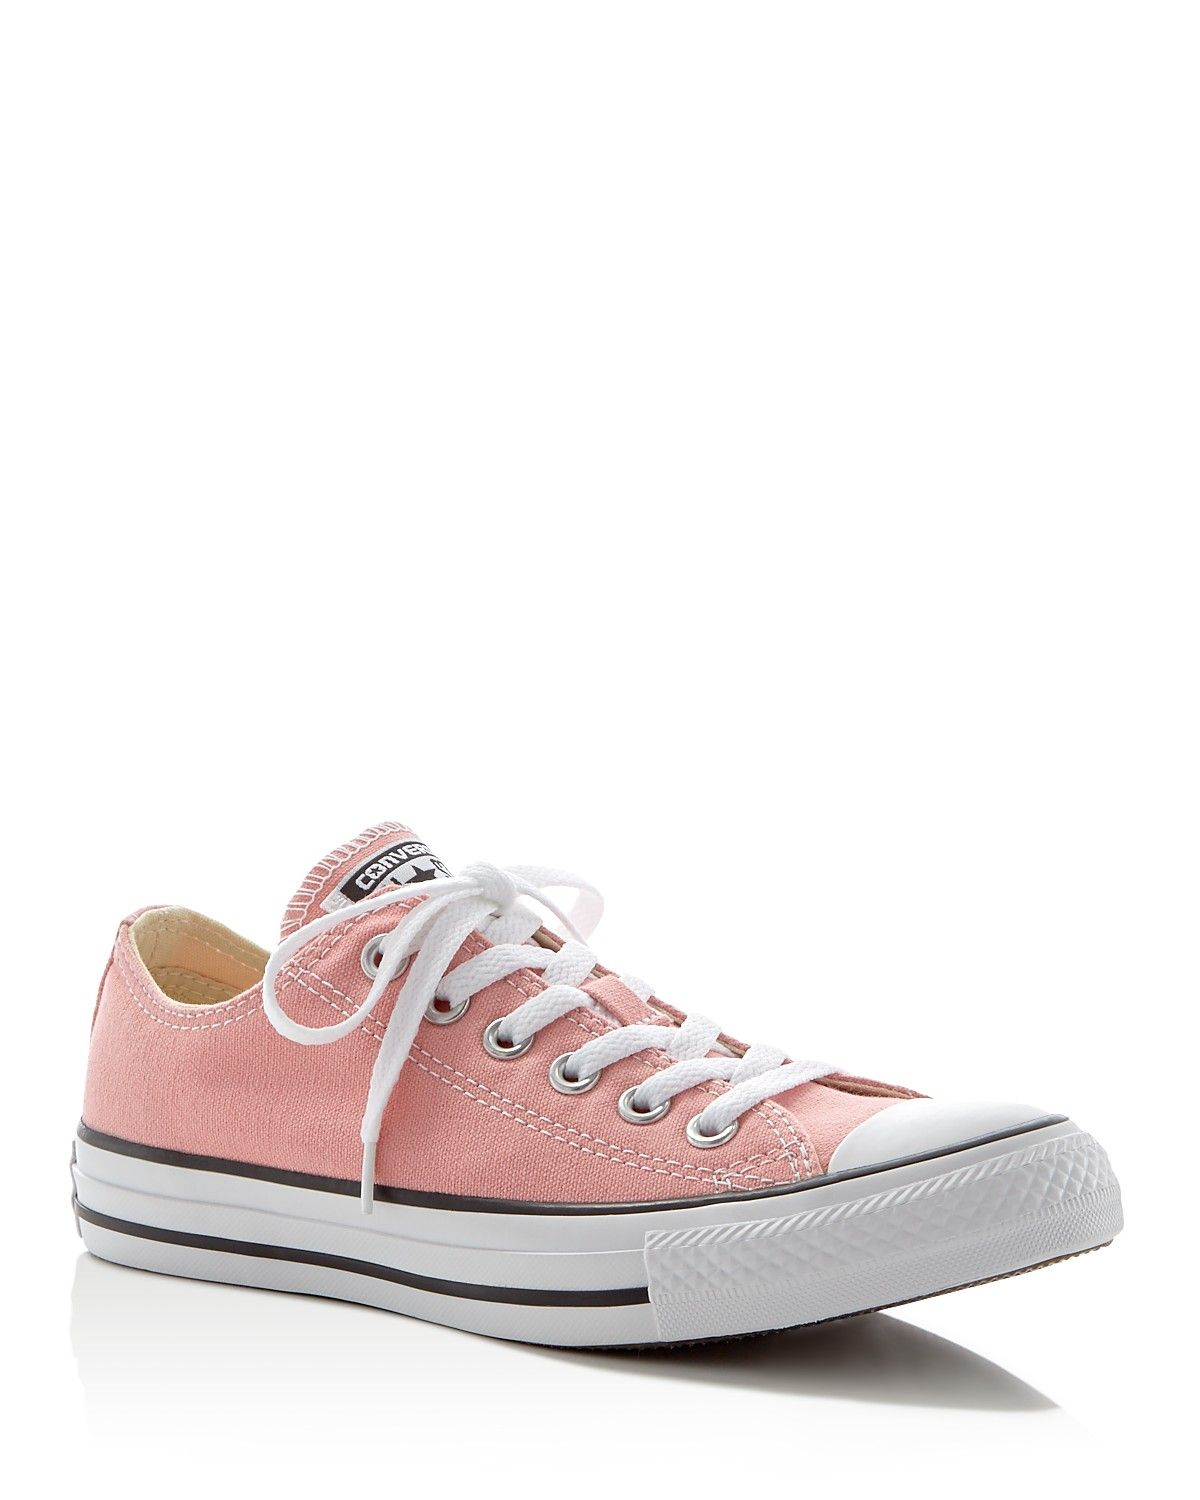 083169199900 Converse Chuck Taylor All Star Lace Up Sneakers - Bloomingdale s ...